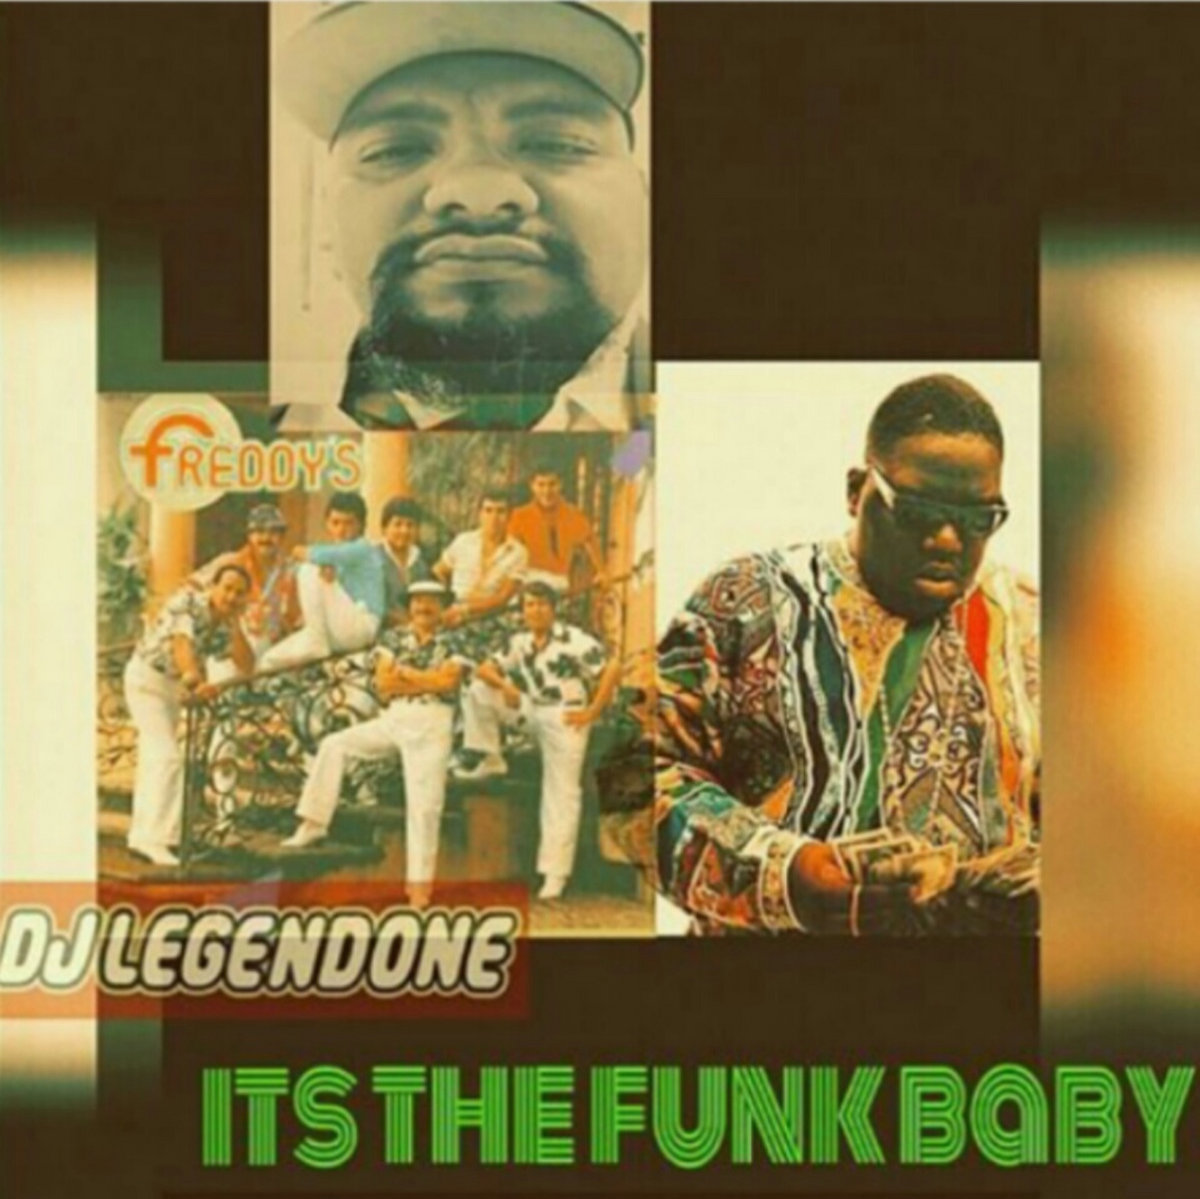 its the funk baby | djlegendone